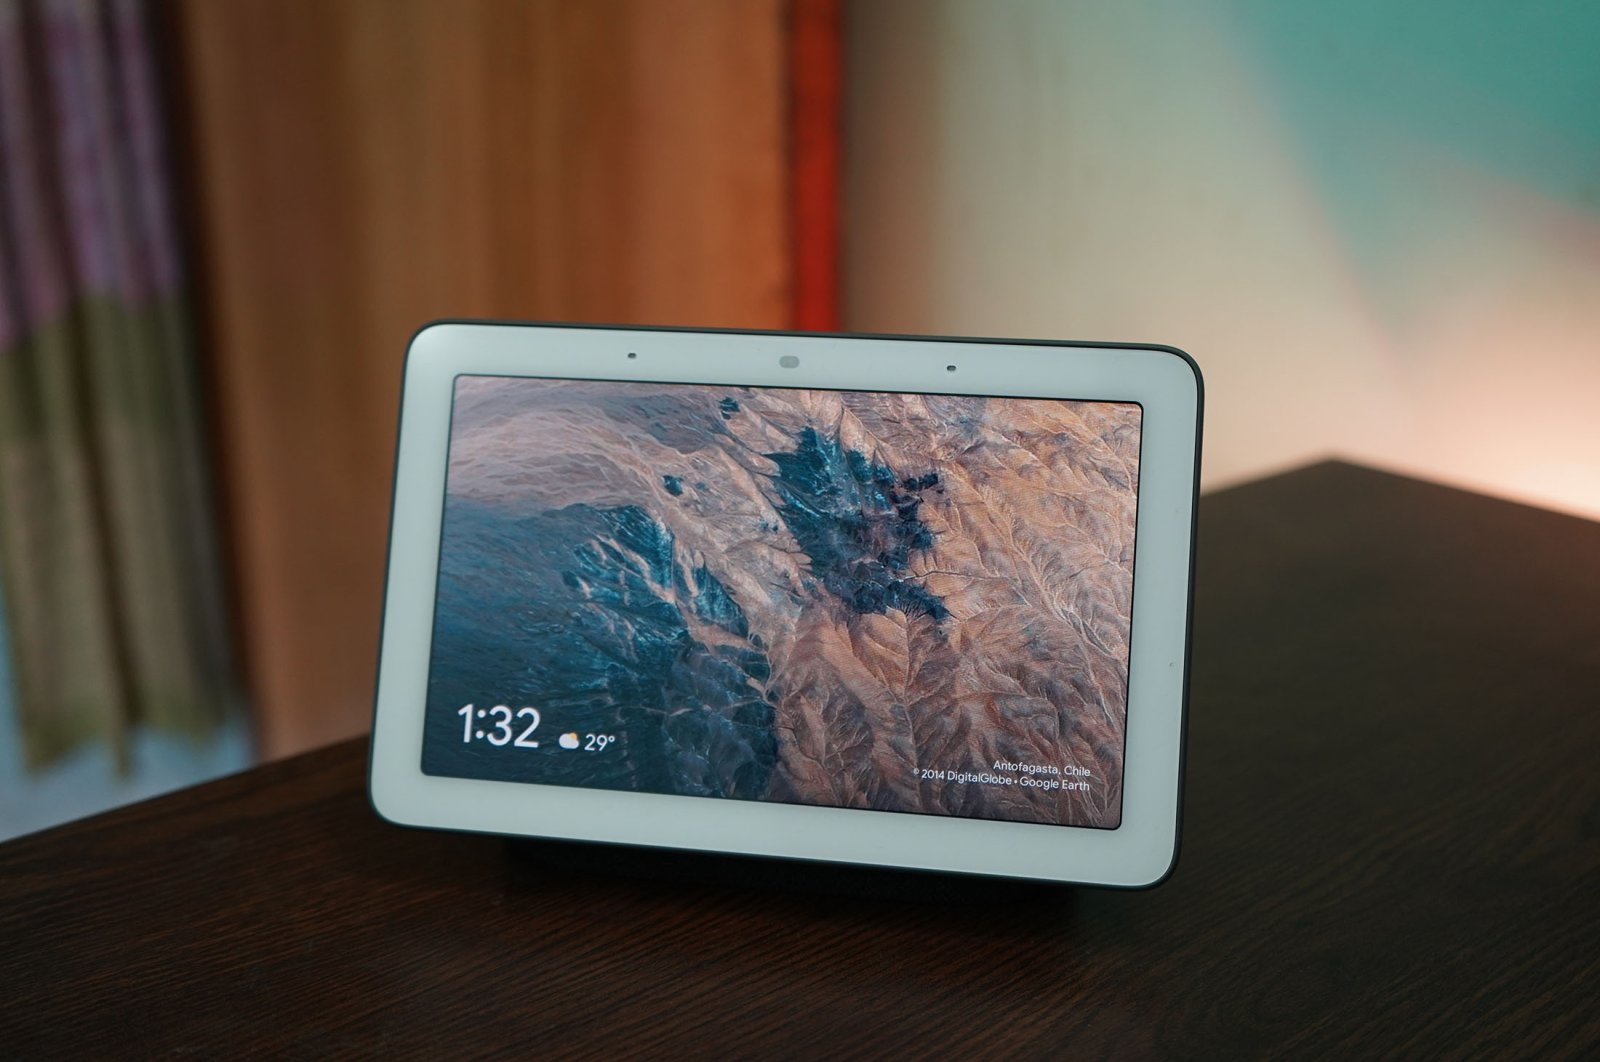 The Google Nest Hub is a Google Assistant smart device that can track your sleep. (Shutterstock Photo)